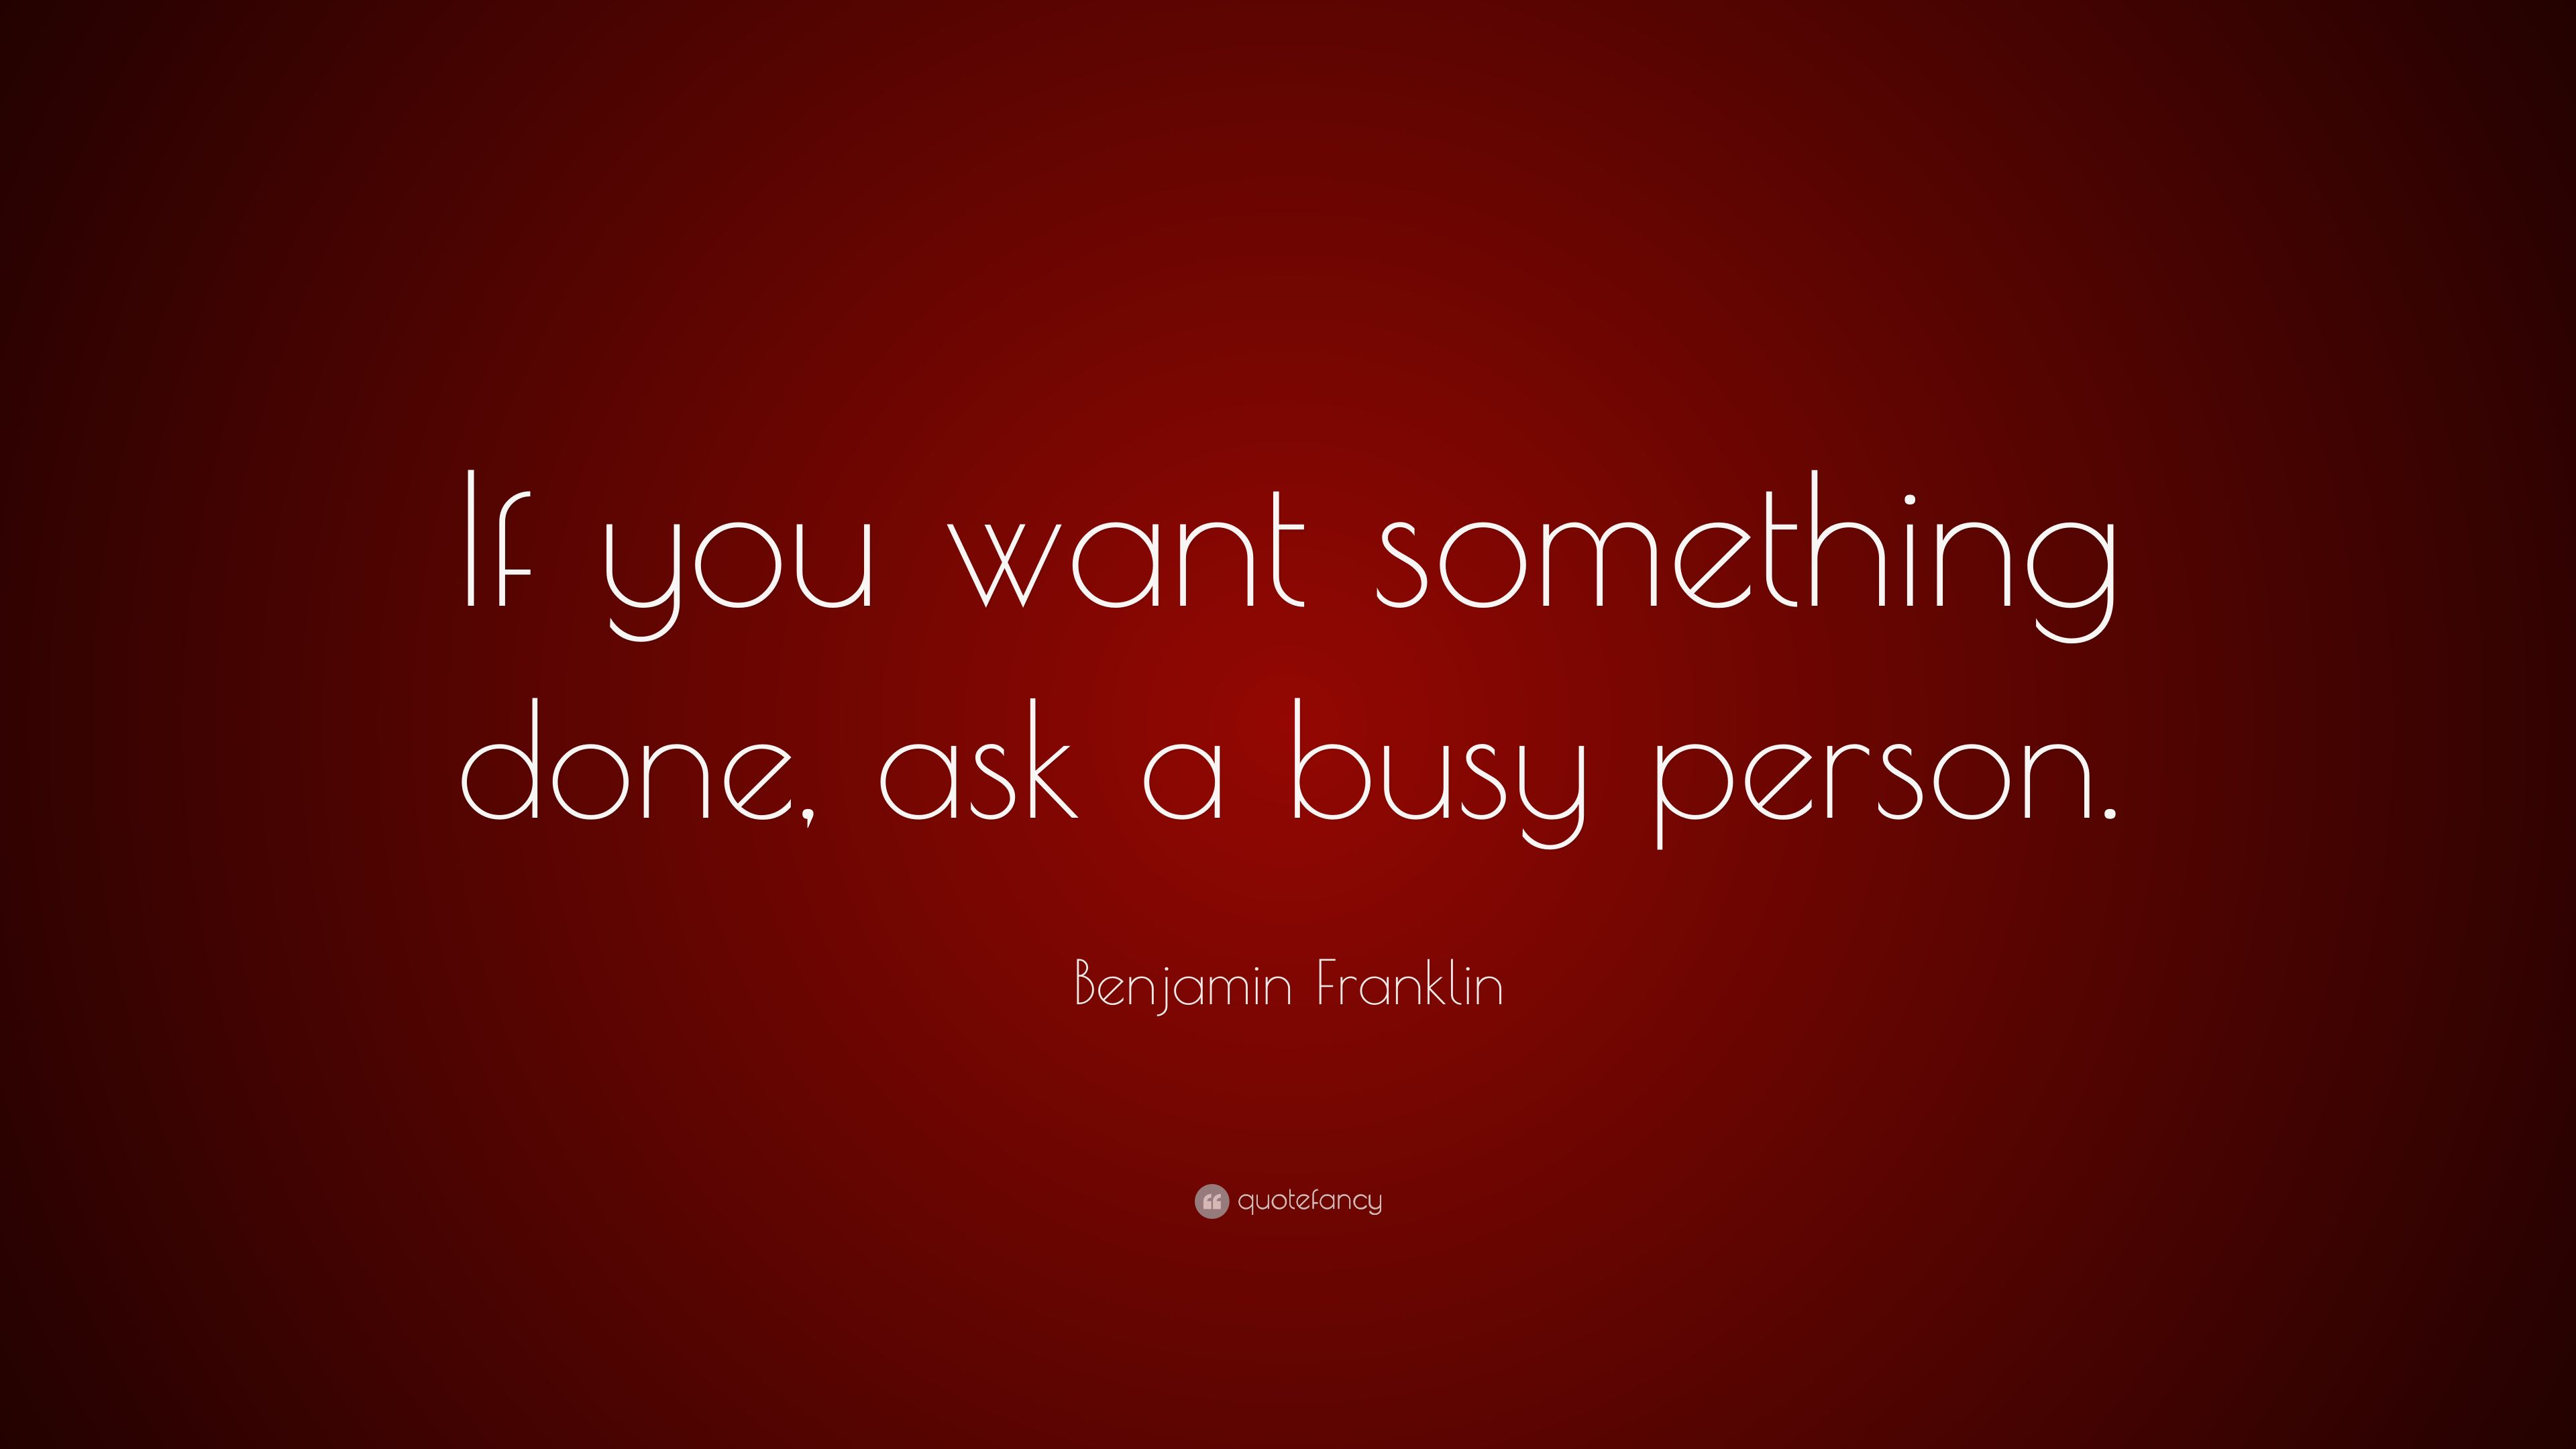 When you want something done ask a busy person